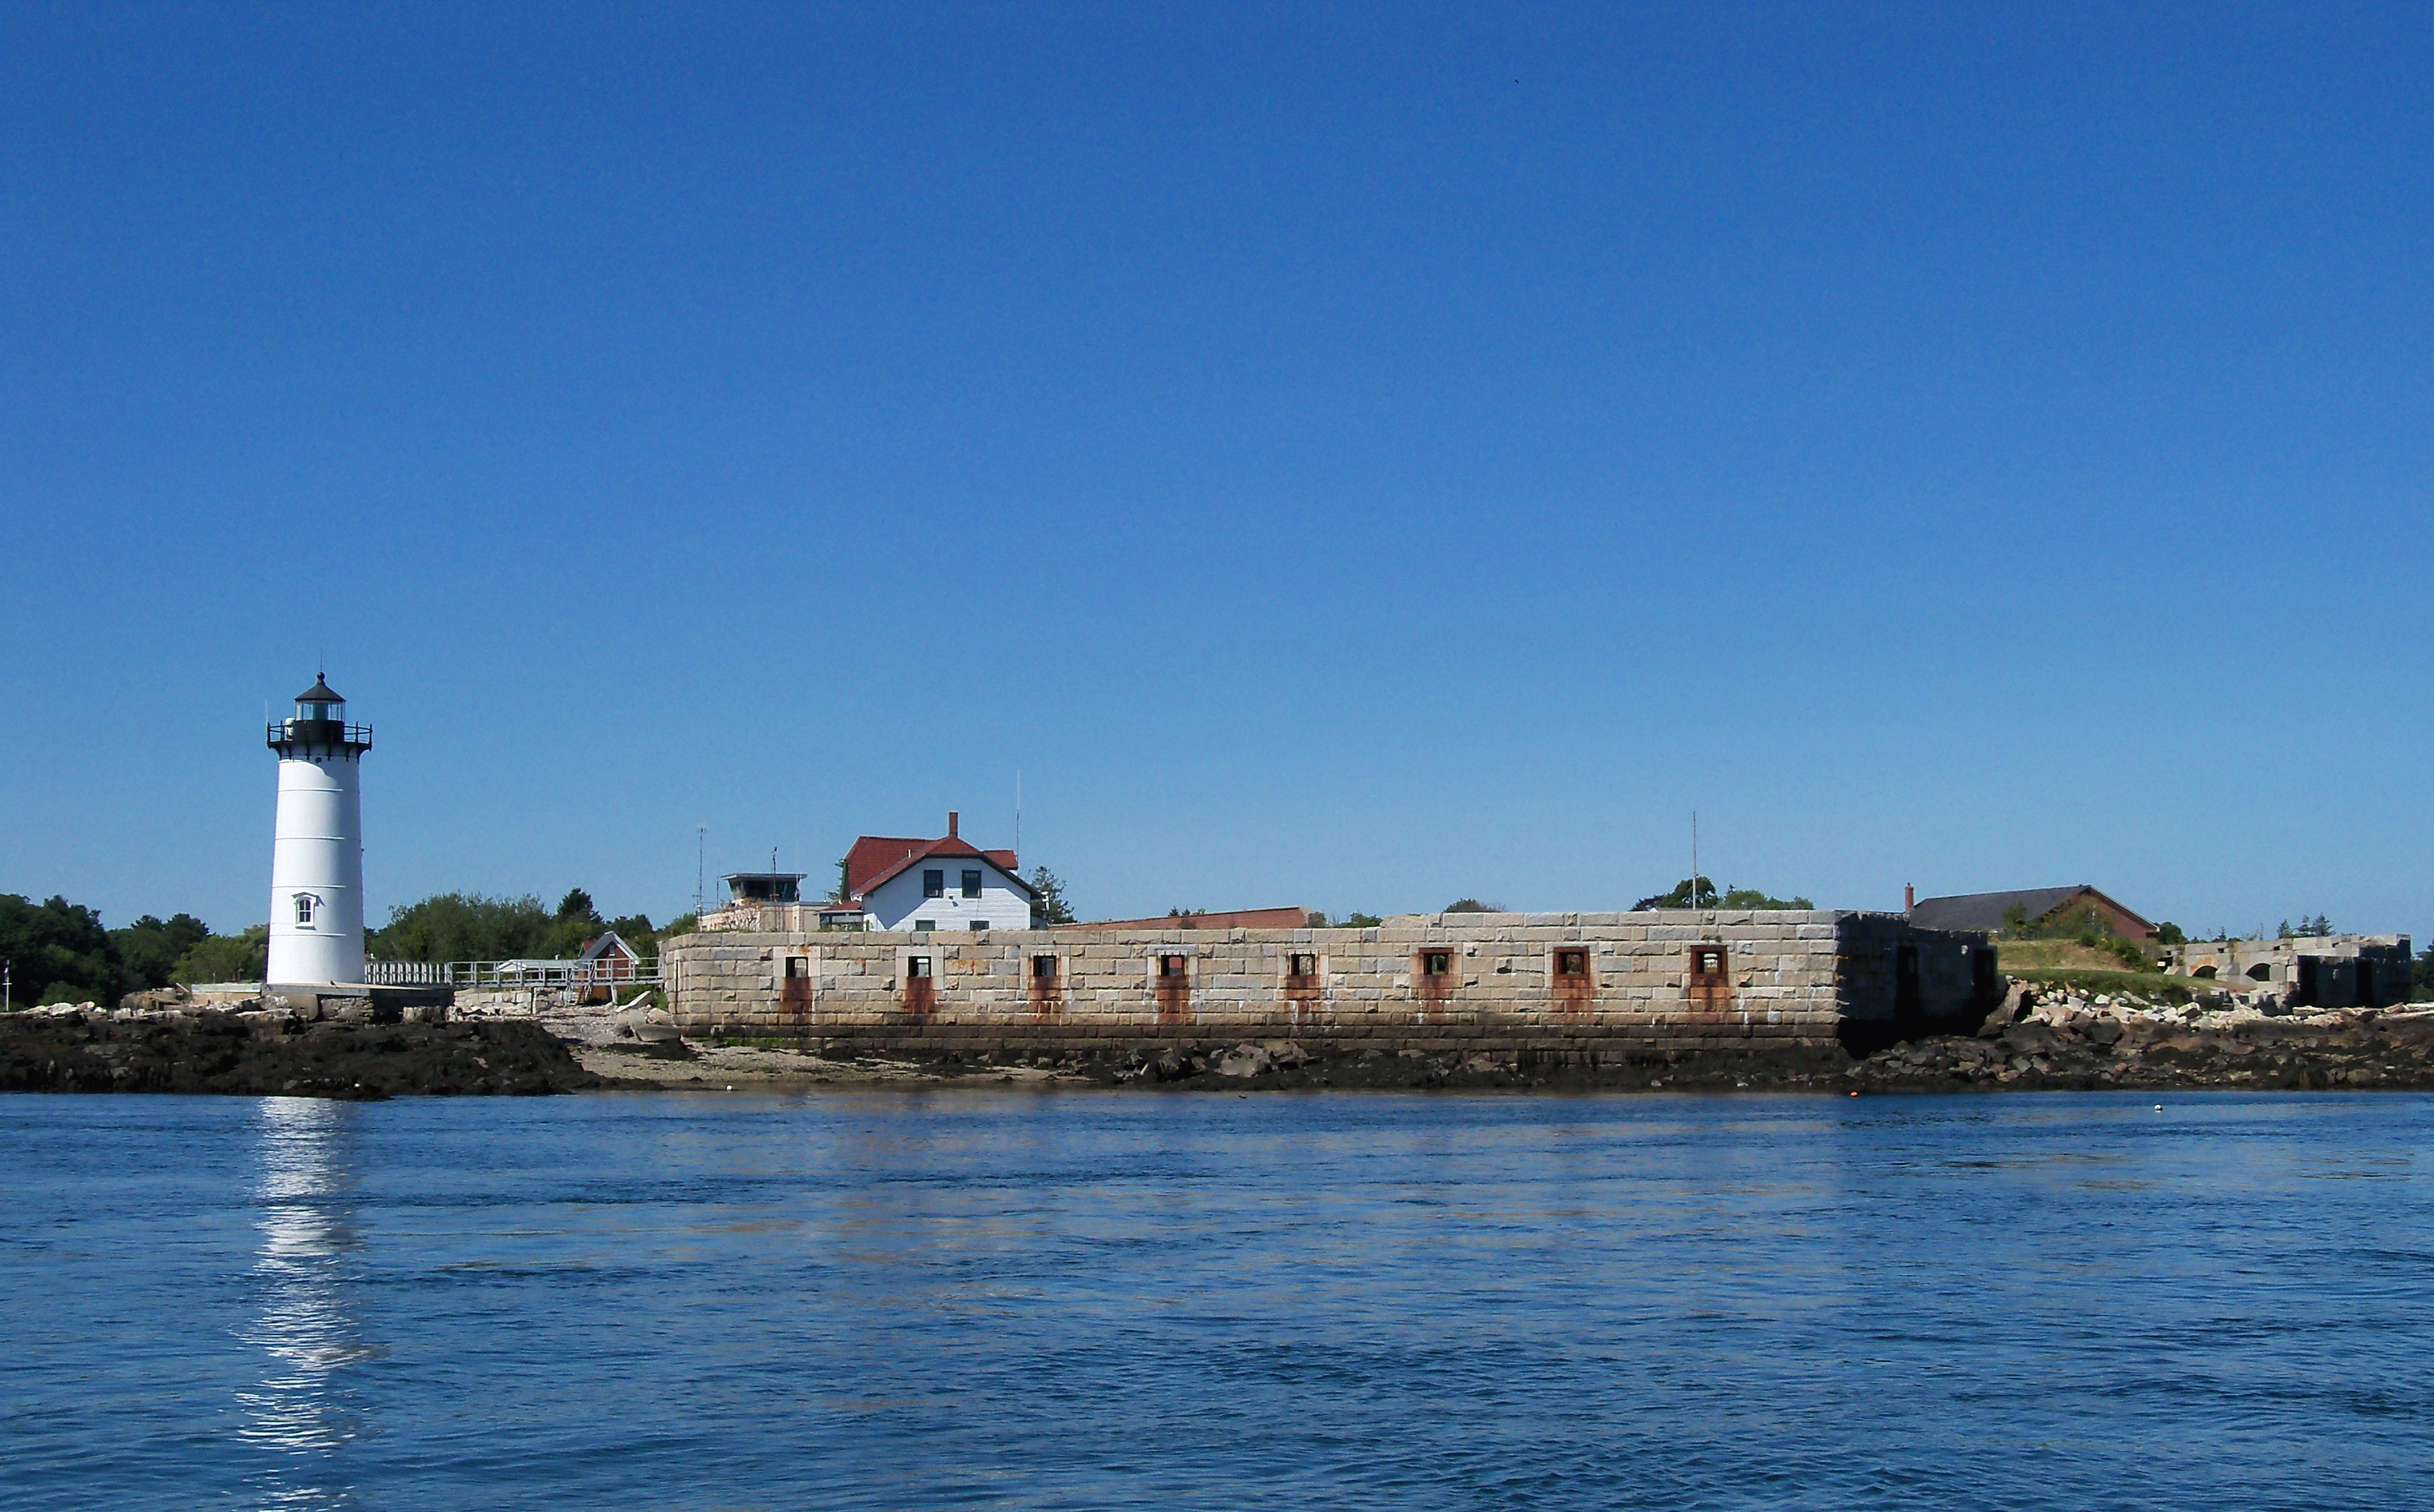 Fort Constitution on the Piscataqua River between New Hampshire and Maine. To the left is Portsmouth Harbor Light, completed in 1878. Its Fourth Order Fresnel lens remains a valuable aid to navigation. Photo taken on August 15, 2013.